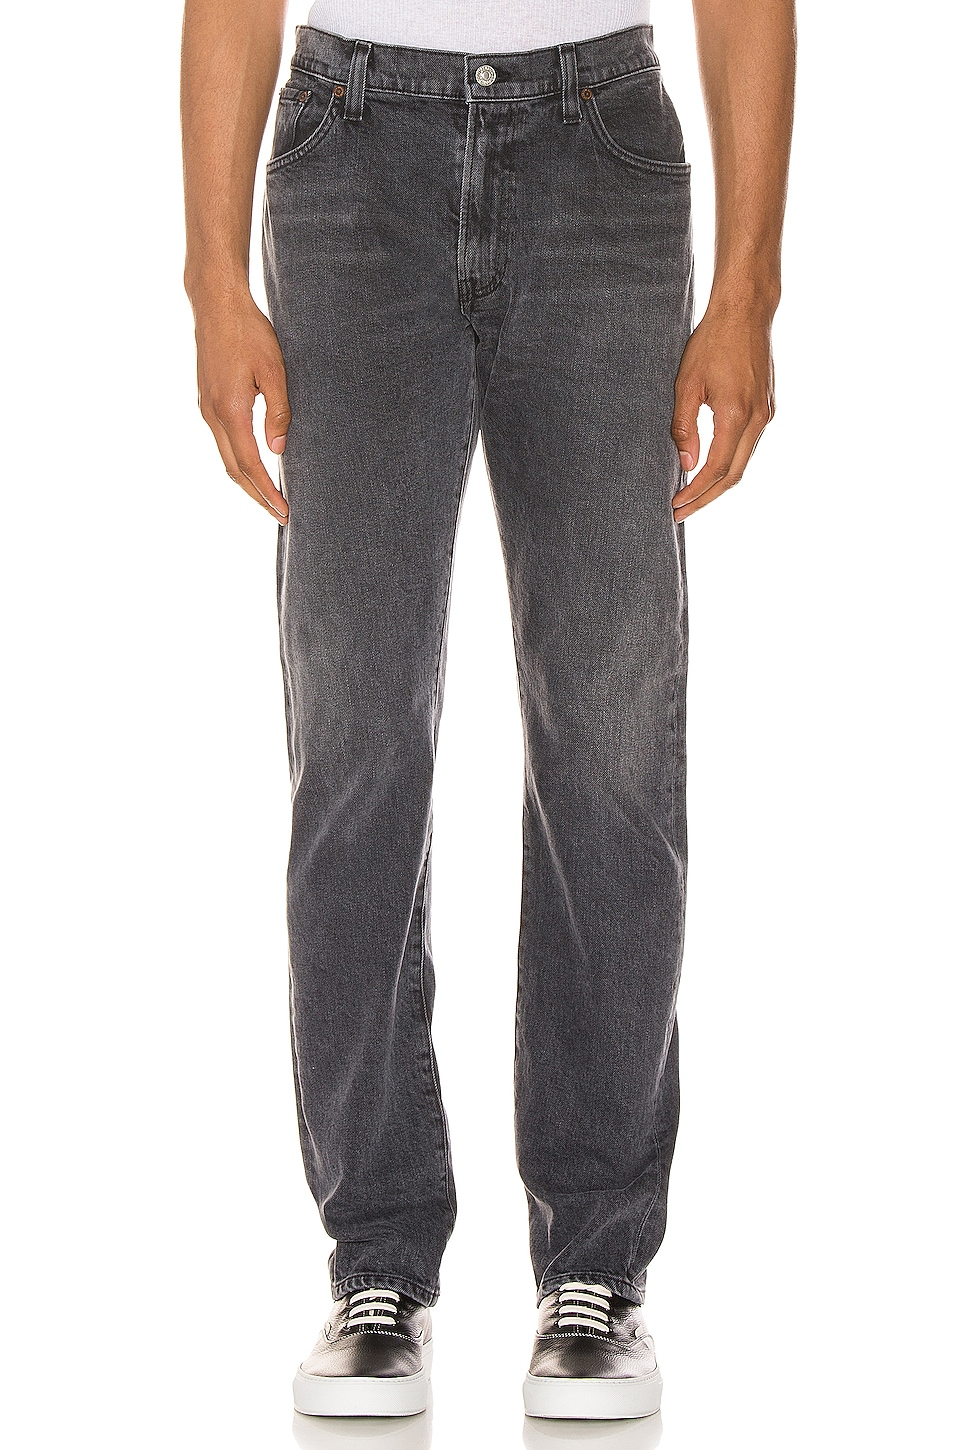 Citizens of Humanity Bowery Slim Jean in Porter